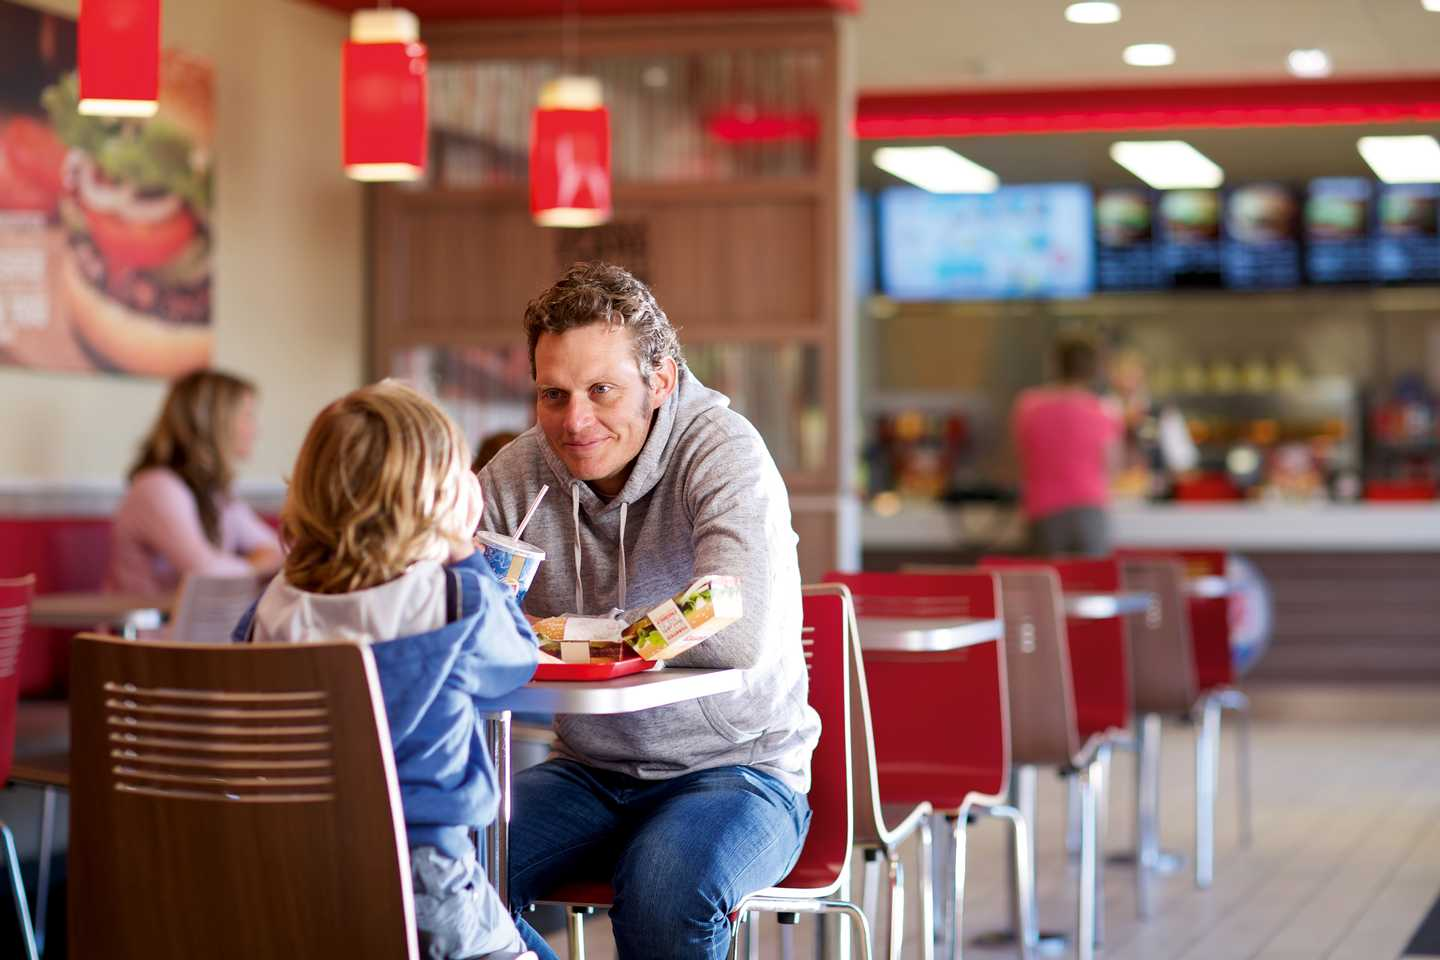 A mother and child in BURGER KING®